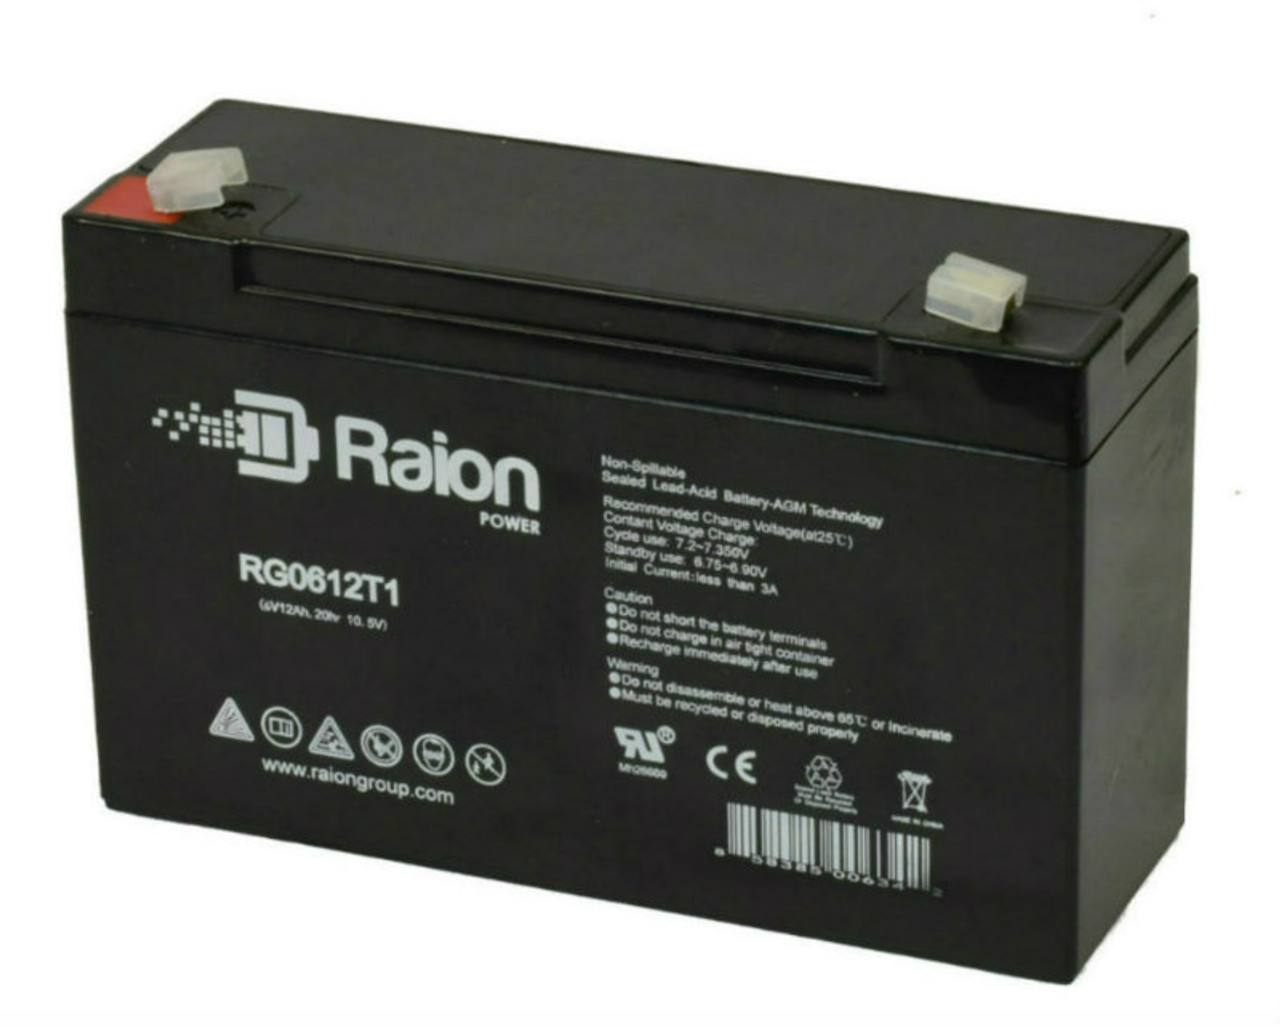 Raion Power RG06120T1 Replacement Battery Pack for York-Wide Light AR emergency light